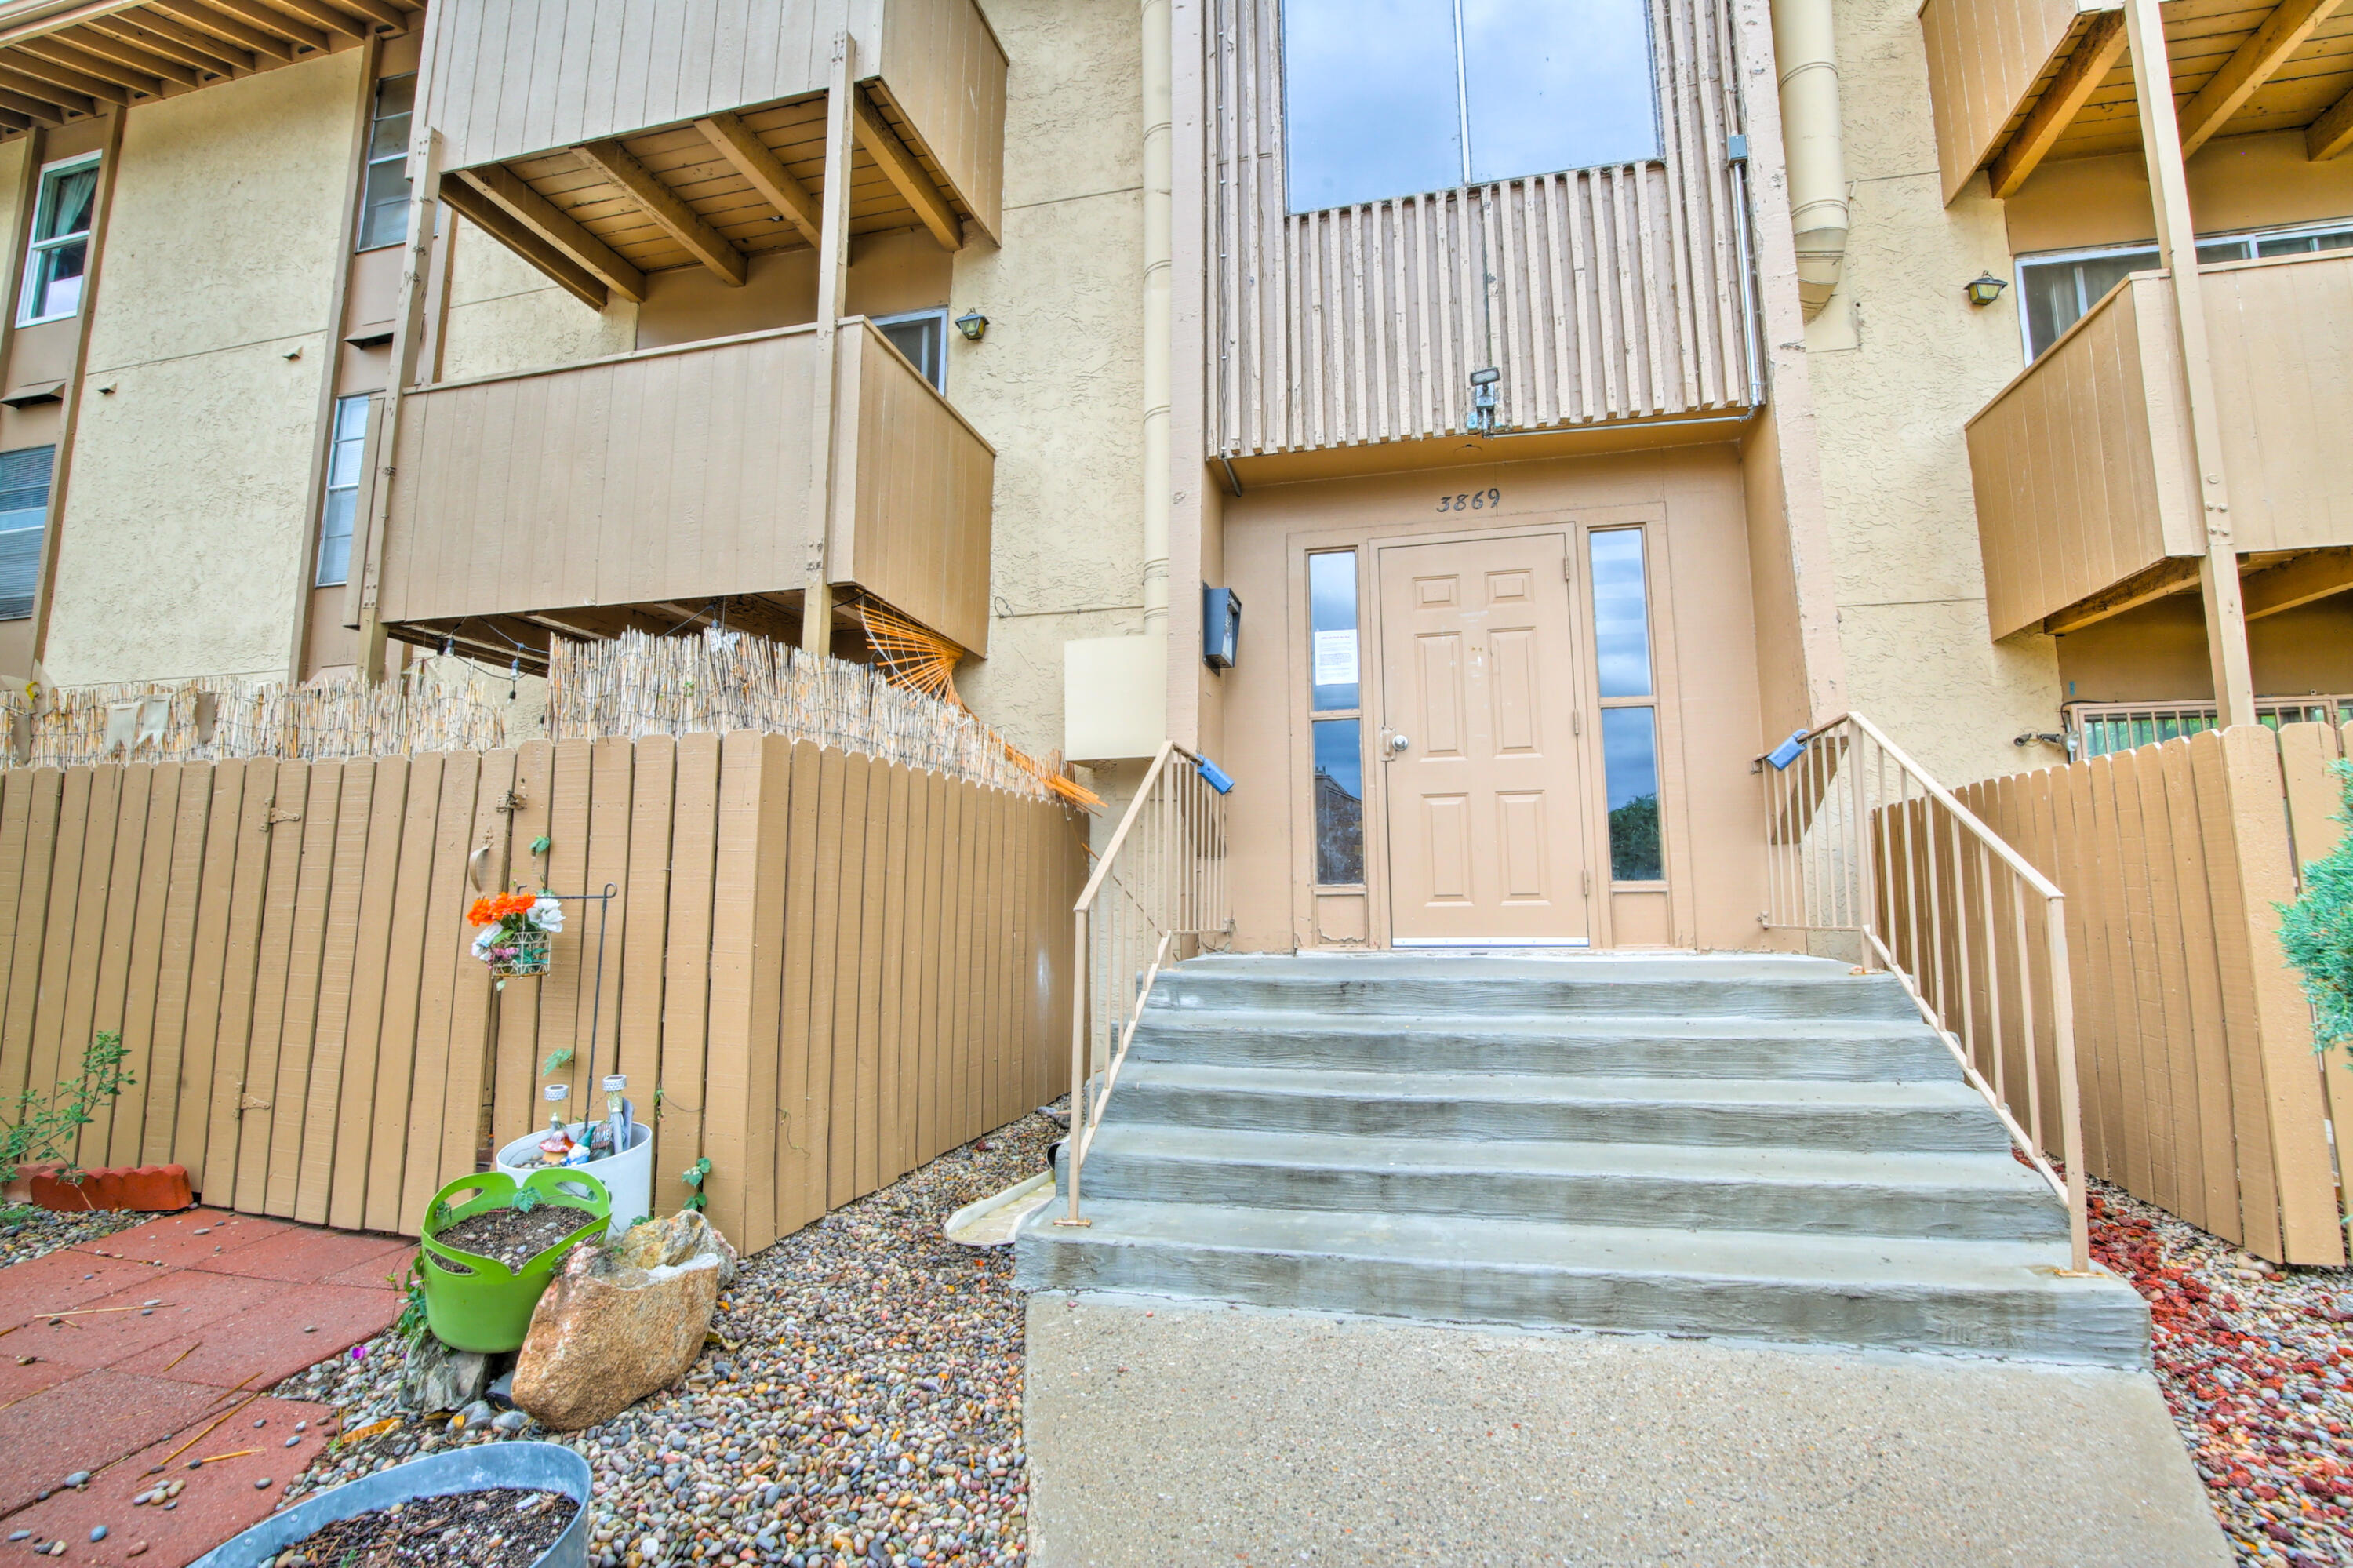 Great price for a 2BR 1BA larger condo in the heart of ABQ.  Refrigerated air, storage, balcony, fireplace in Hillcrest Park that features swimming pool, playground, laundry facilities on site and additional parking for visitors near this Condo.